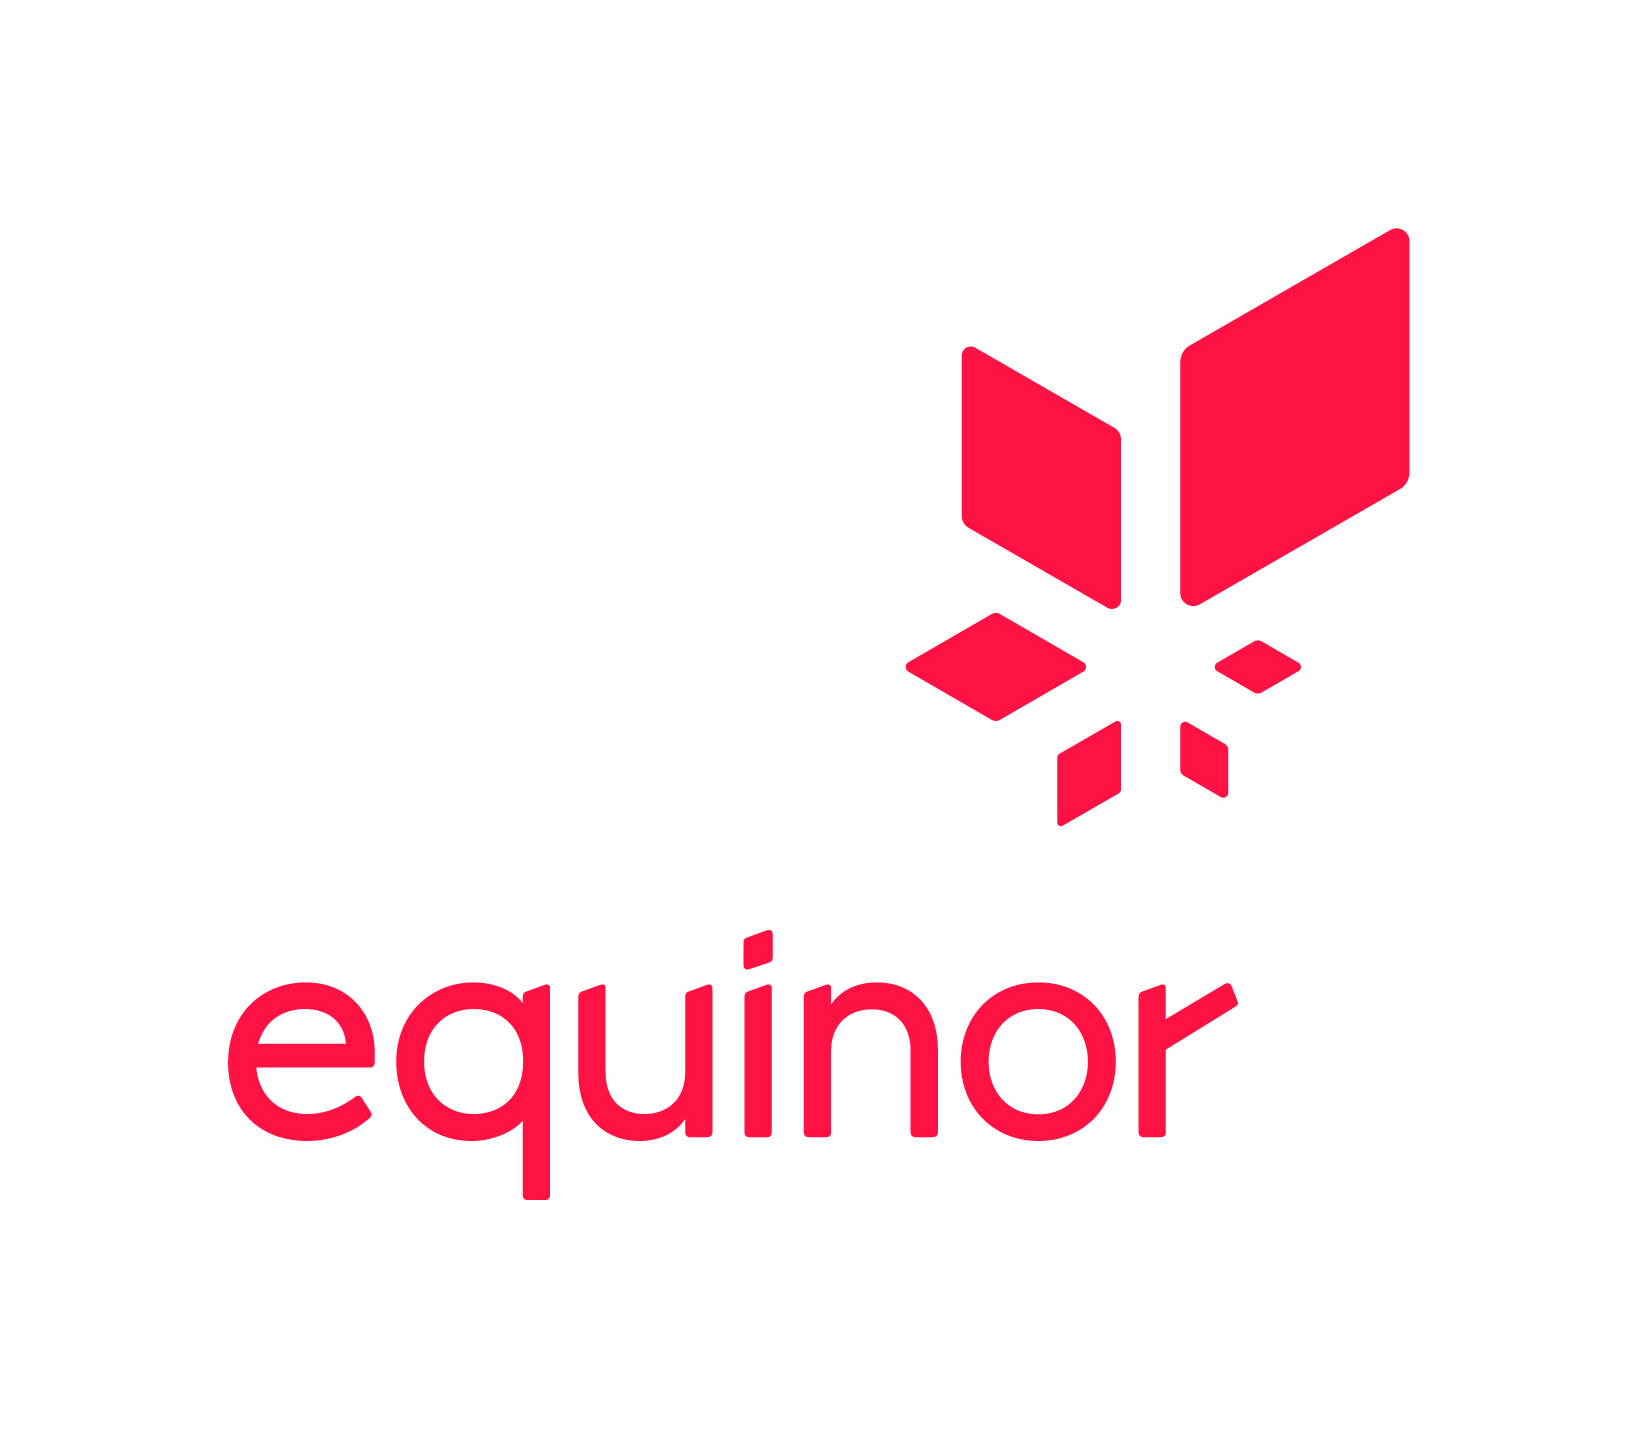 Equinor_PRIMARY_logo_RGB_RED.jpg